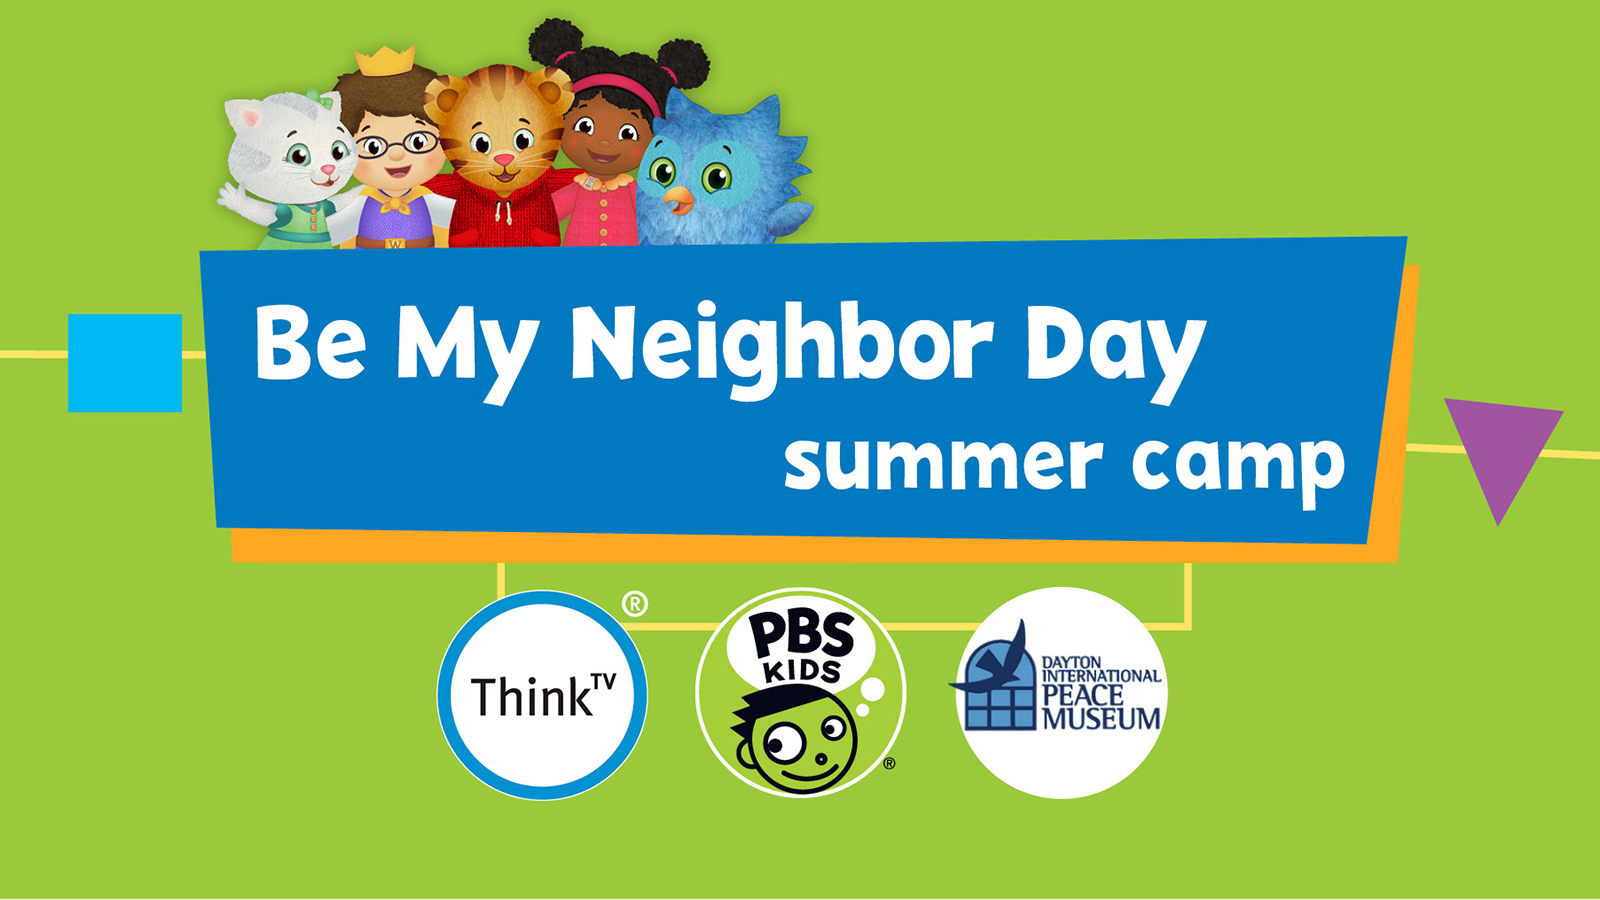 Be My Neighbor Day Camp